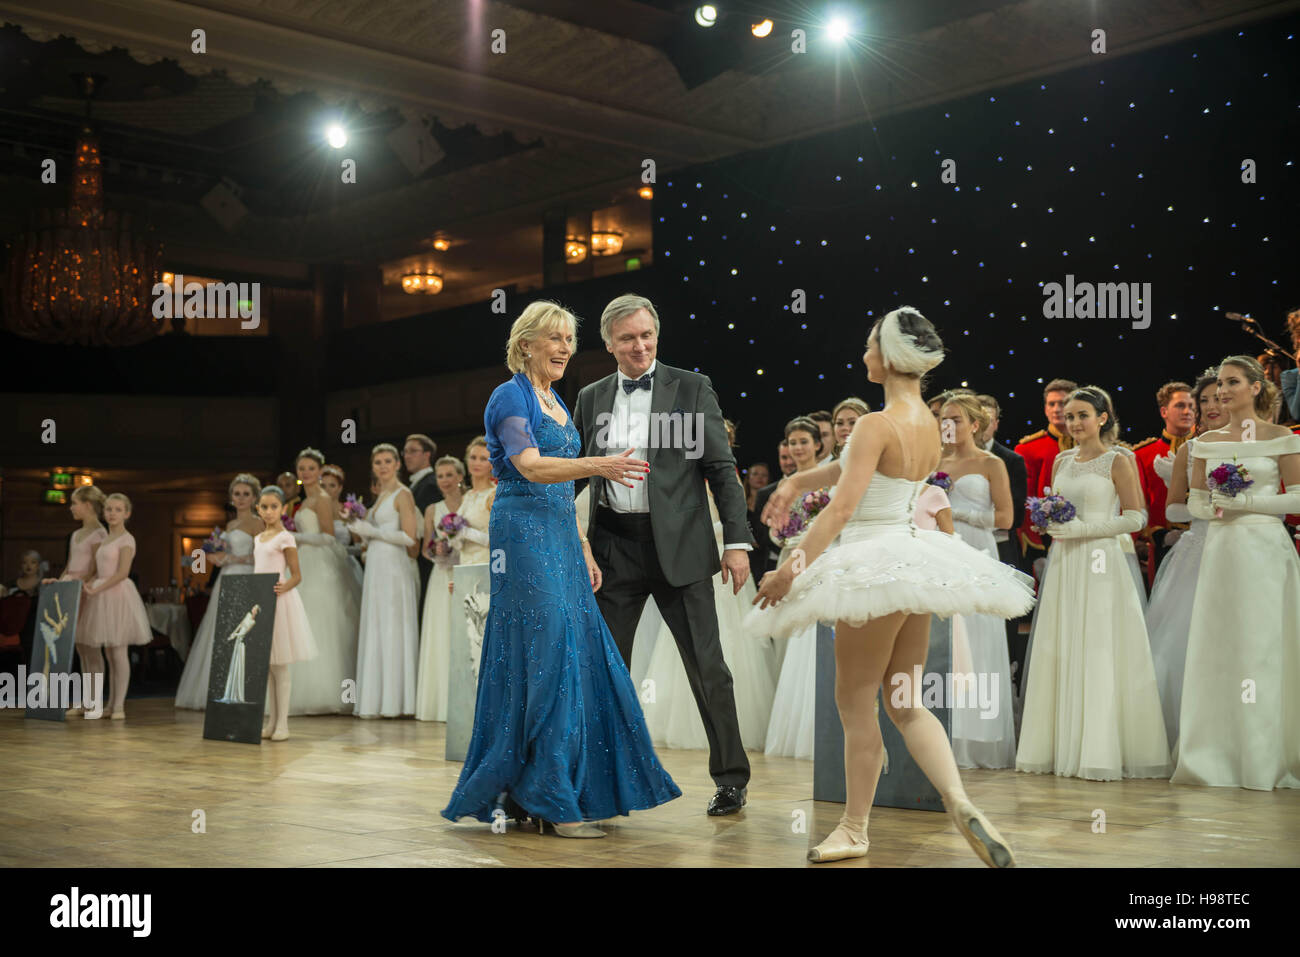 London, UK. 19th November, 2016. Patron Princess Olga Romanoff(blue ...